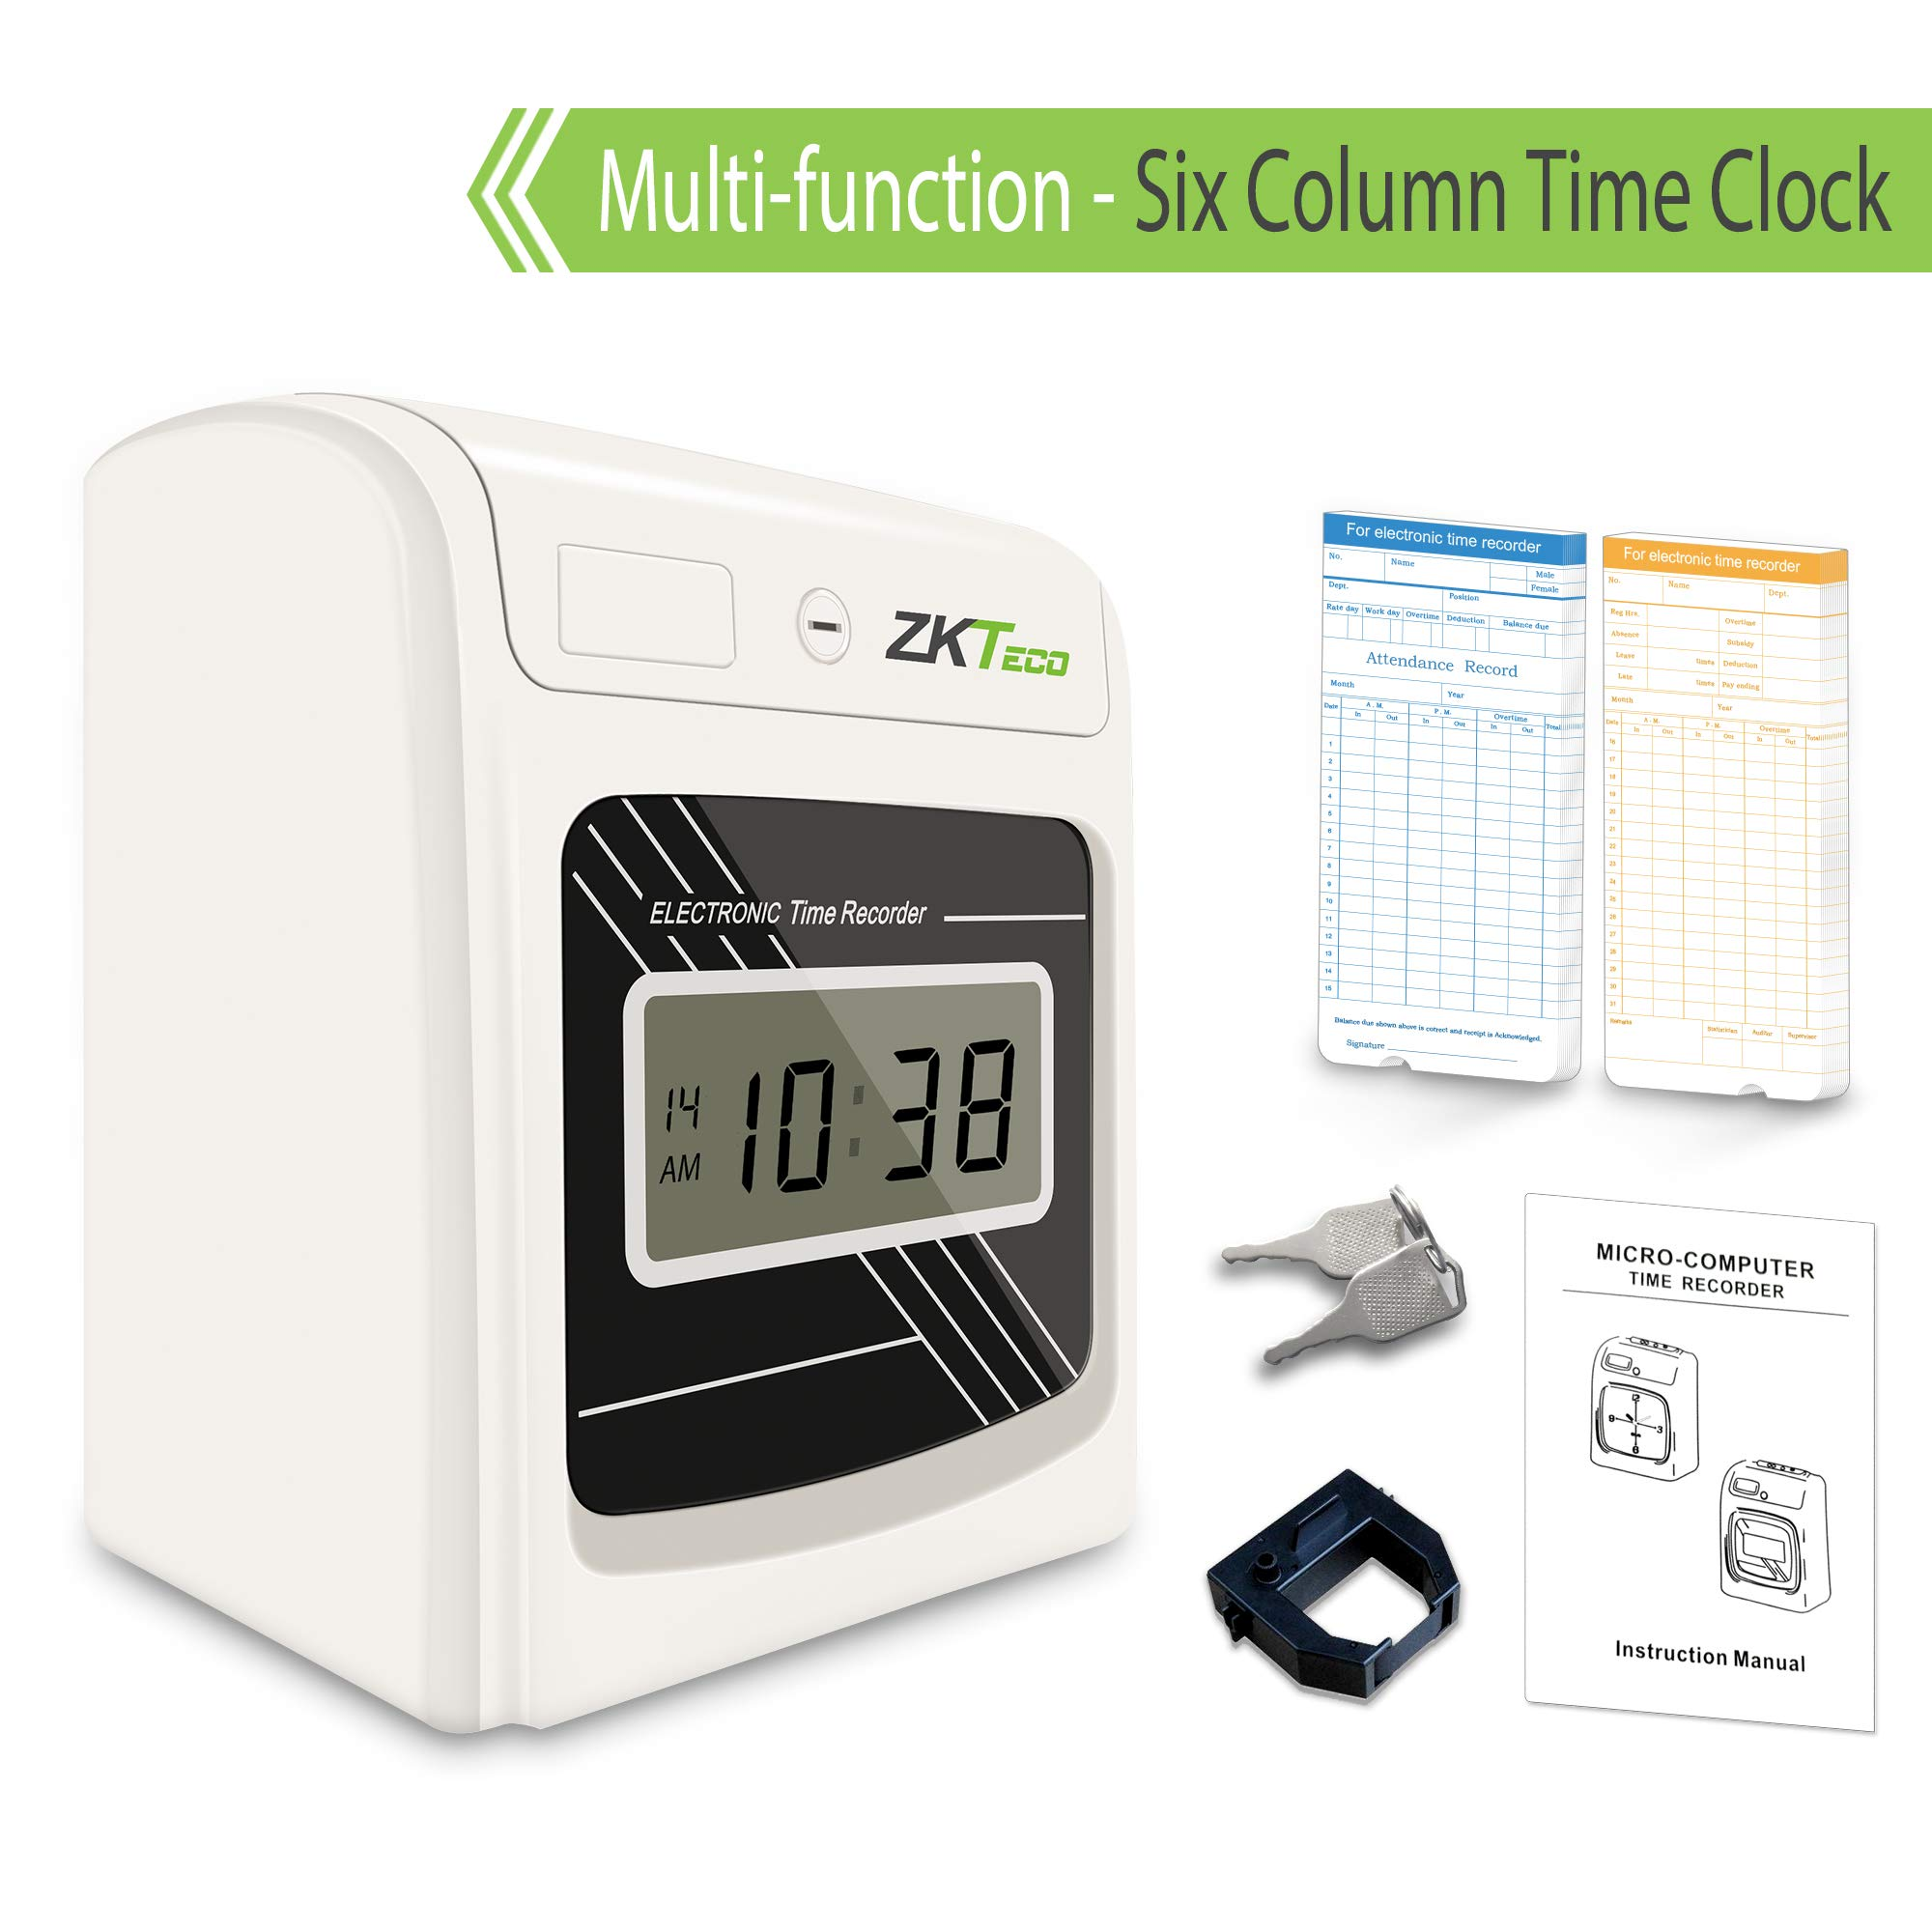 ZKTeco Time Clock for Small Business Punch Time Recorder Employee Attendance Payroll Recorder Bundle with 100 Cards,1 Ribbon,2 Keys,LCD Display with six Column PH601N by ZKTeco